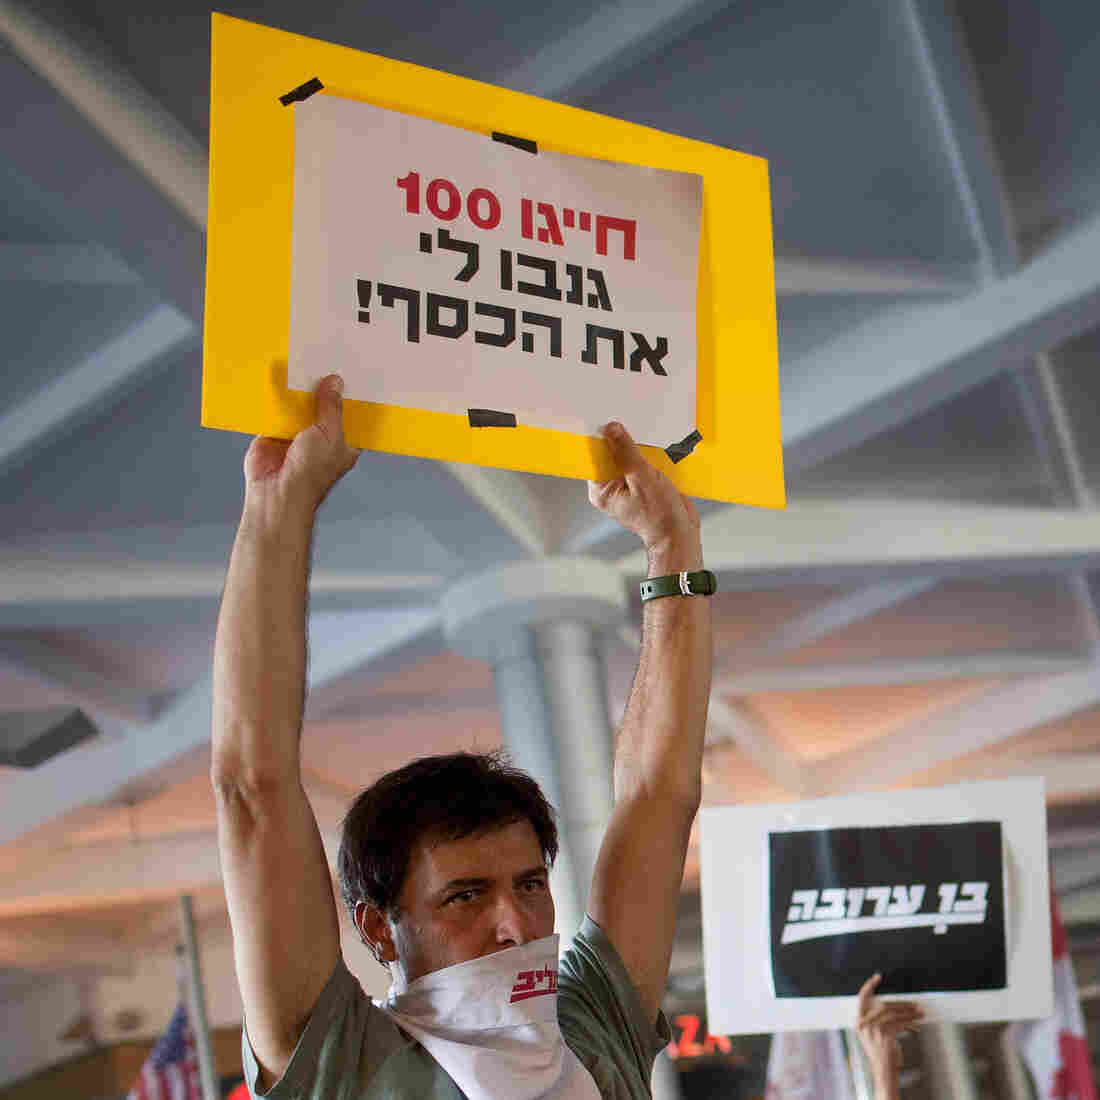 Former staff of Israel's daily Maariv newspaper protest their dismissals on Sept. 20, in Tel Aviv. The newspaper, one of the country's oldest, is on the verge of closure.